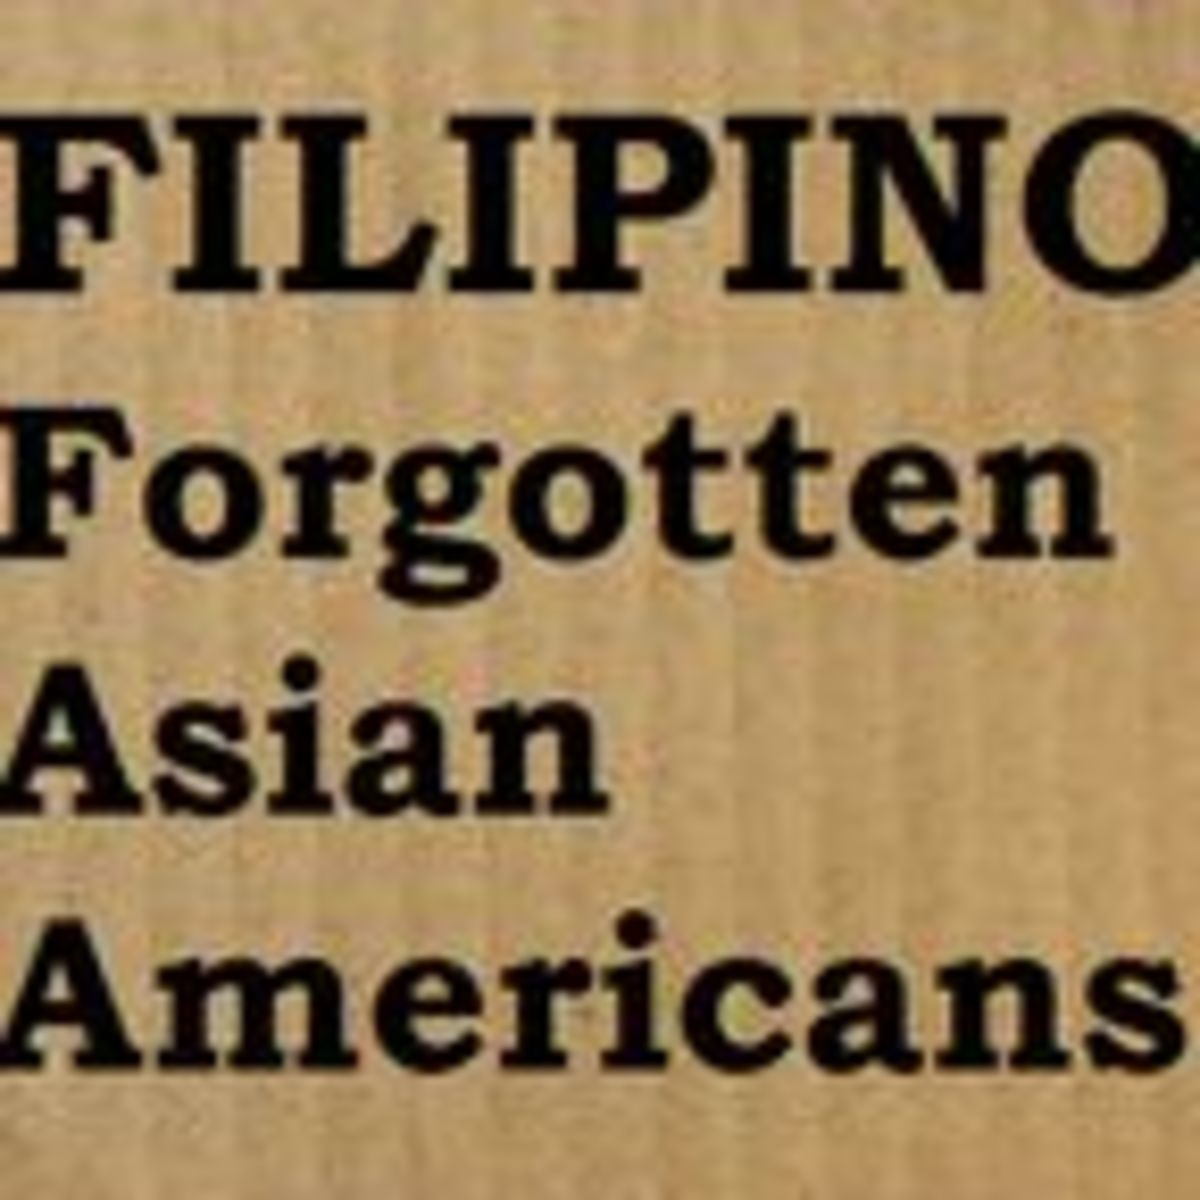 why are filipino americans still forgotten and invisible